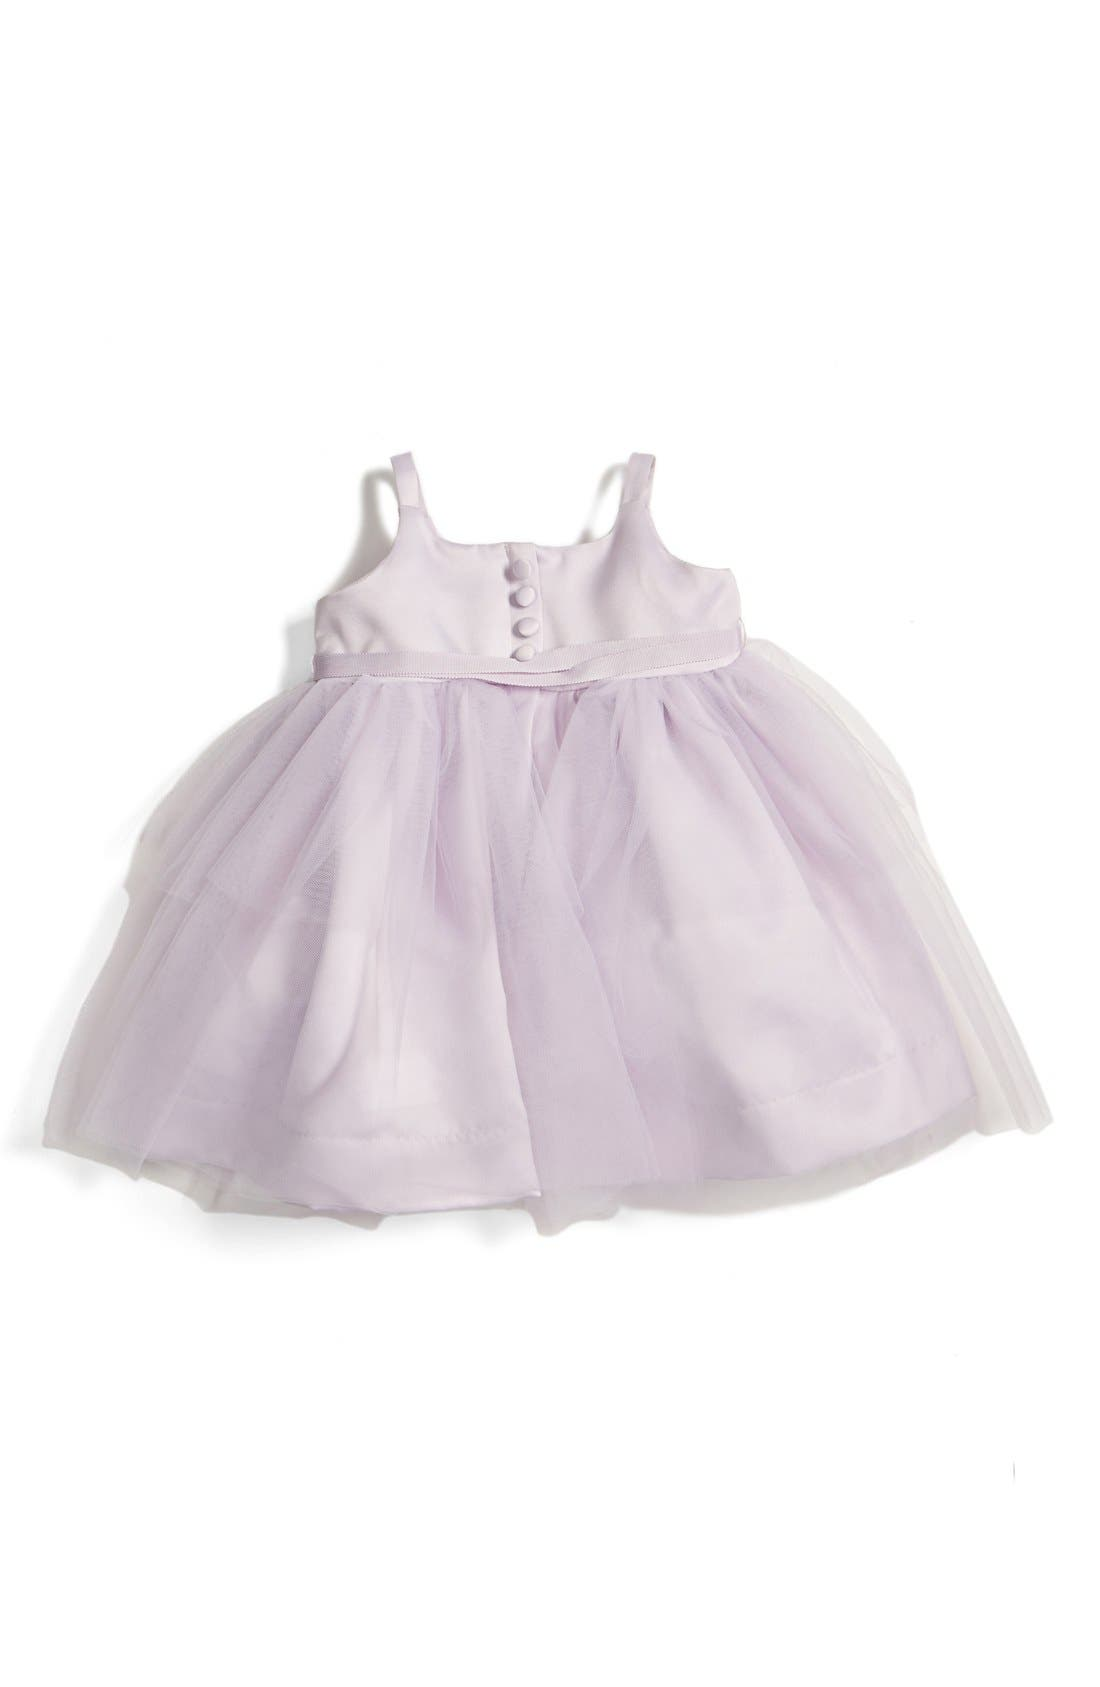 Tulle Ballerina Dress,                             Alternate thumbnail 22, color,